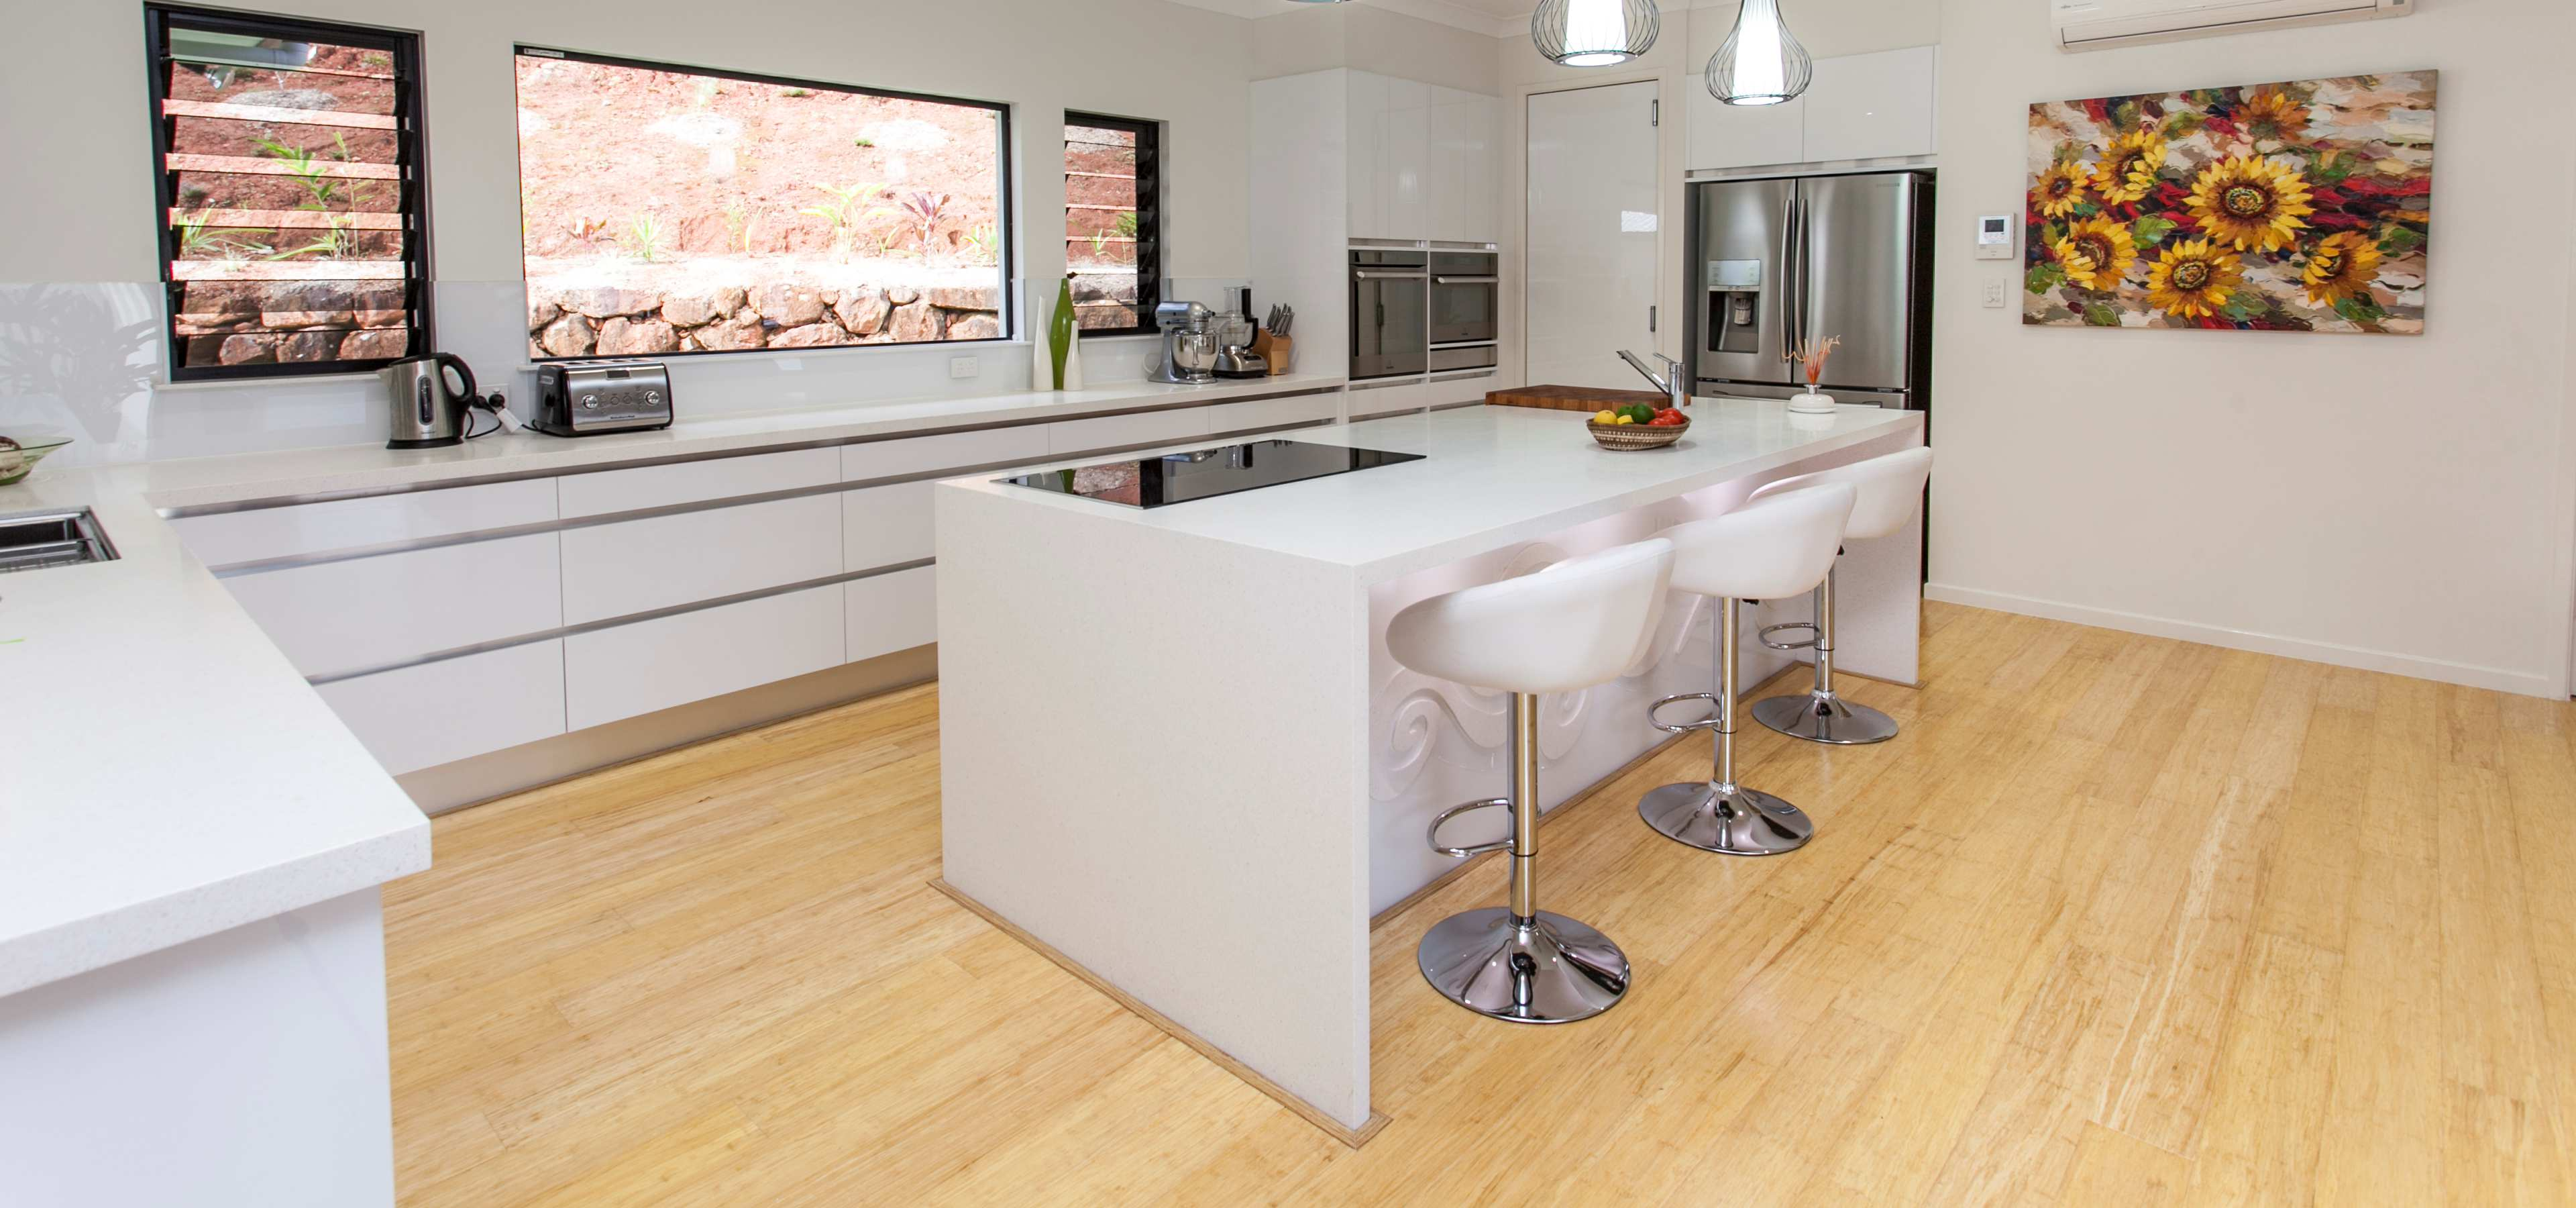 kitchen design cairns cairns kitchen designs cairns kitchens 445